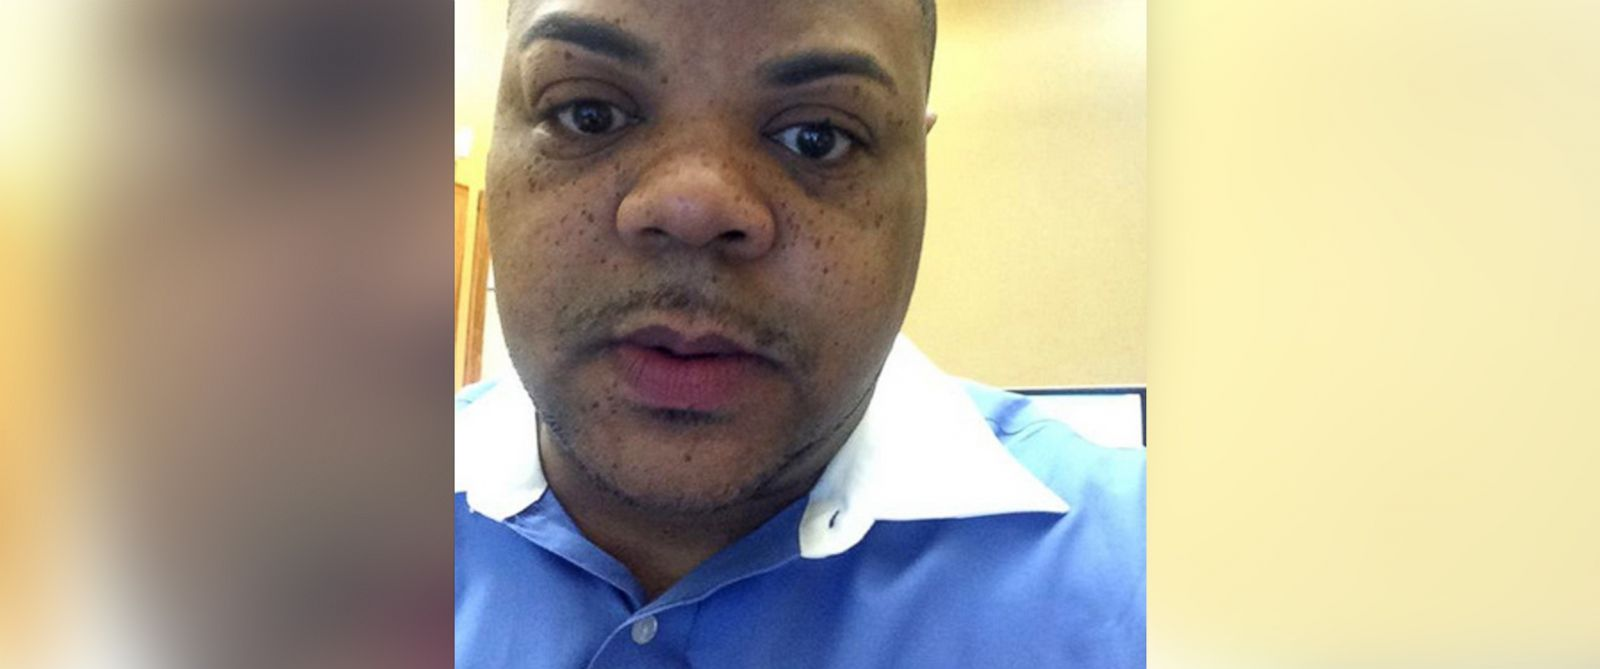 """PHOTO: This image was posted to Vester Flanagans Twitter account under his on-air name """"Bryce Williams"""" on Aug. 19, 2015 with the text, """"While at a workers comp company in Roanoke, Va."""""""